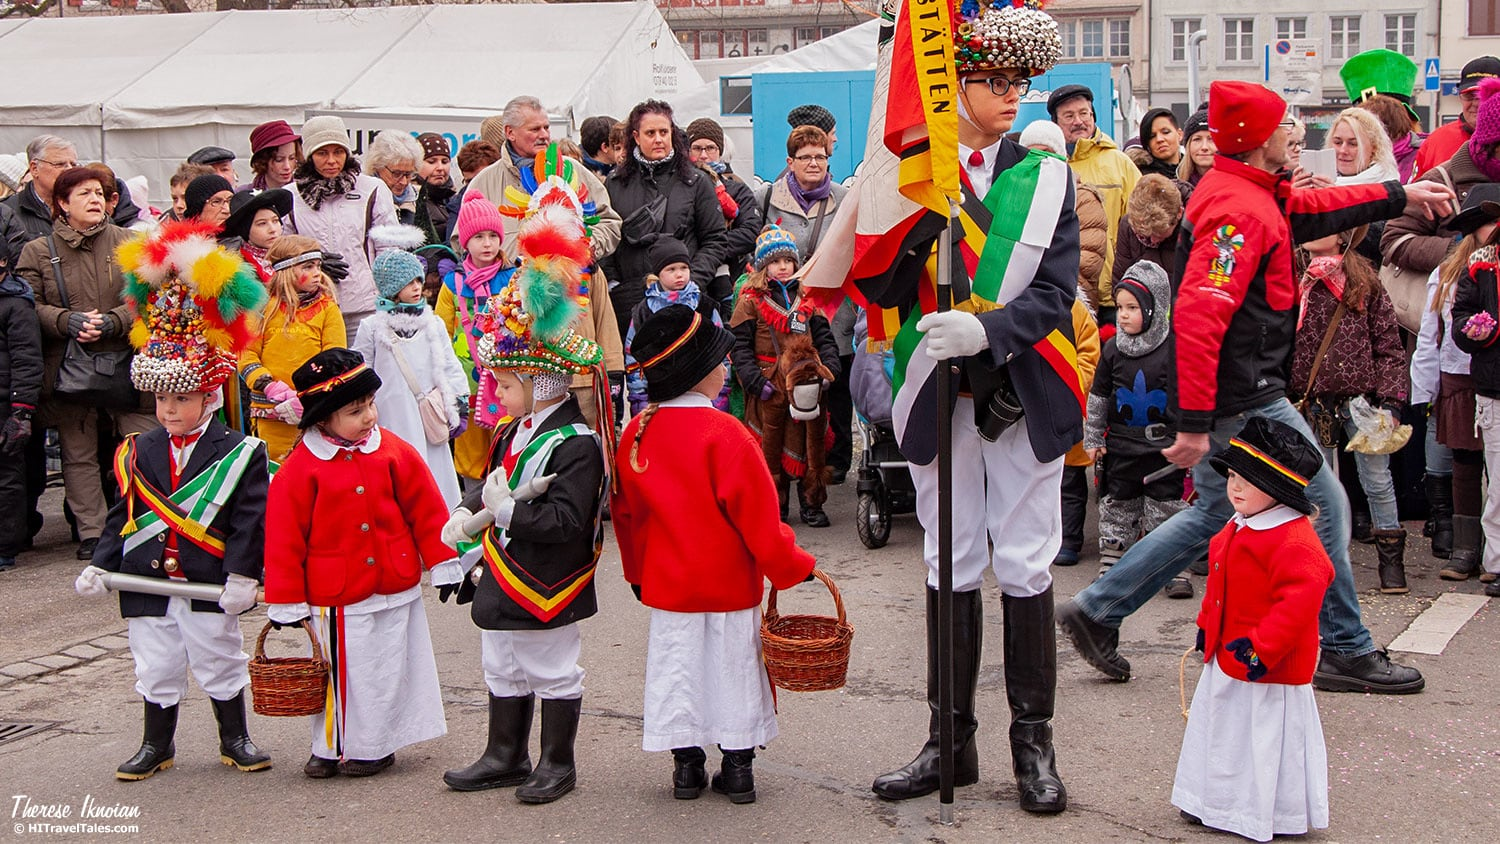 When the parade is over, toddlers in little royal town costumes are lined up – granted, getting them to stay there for a march and presentation can be difficult.